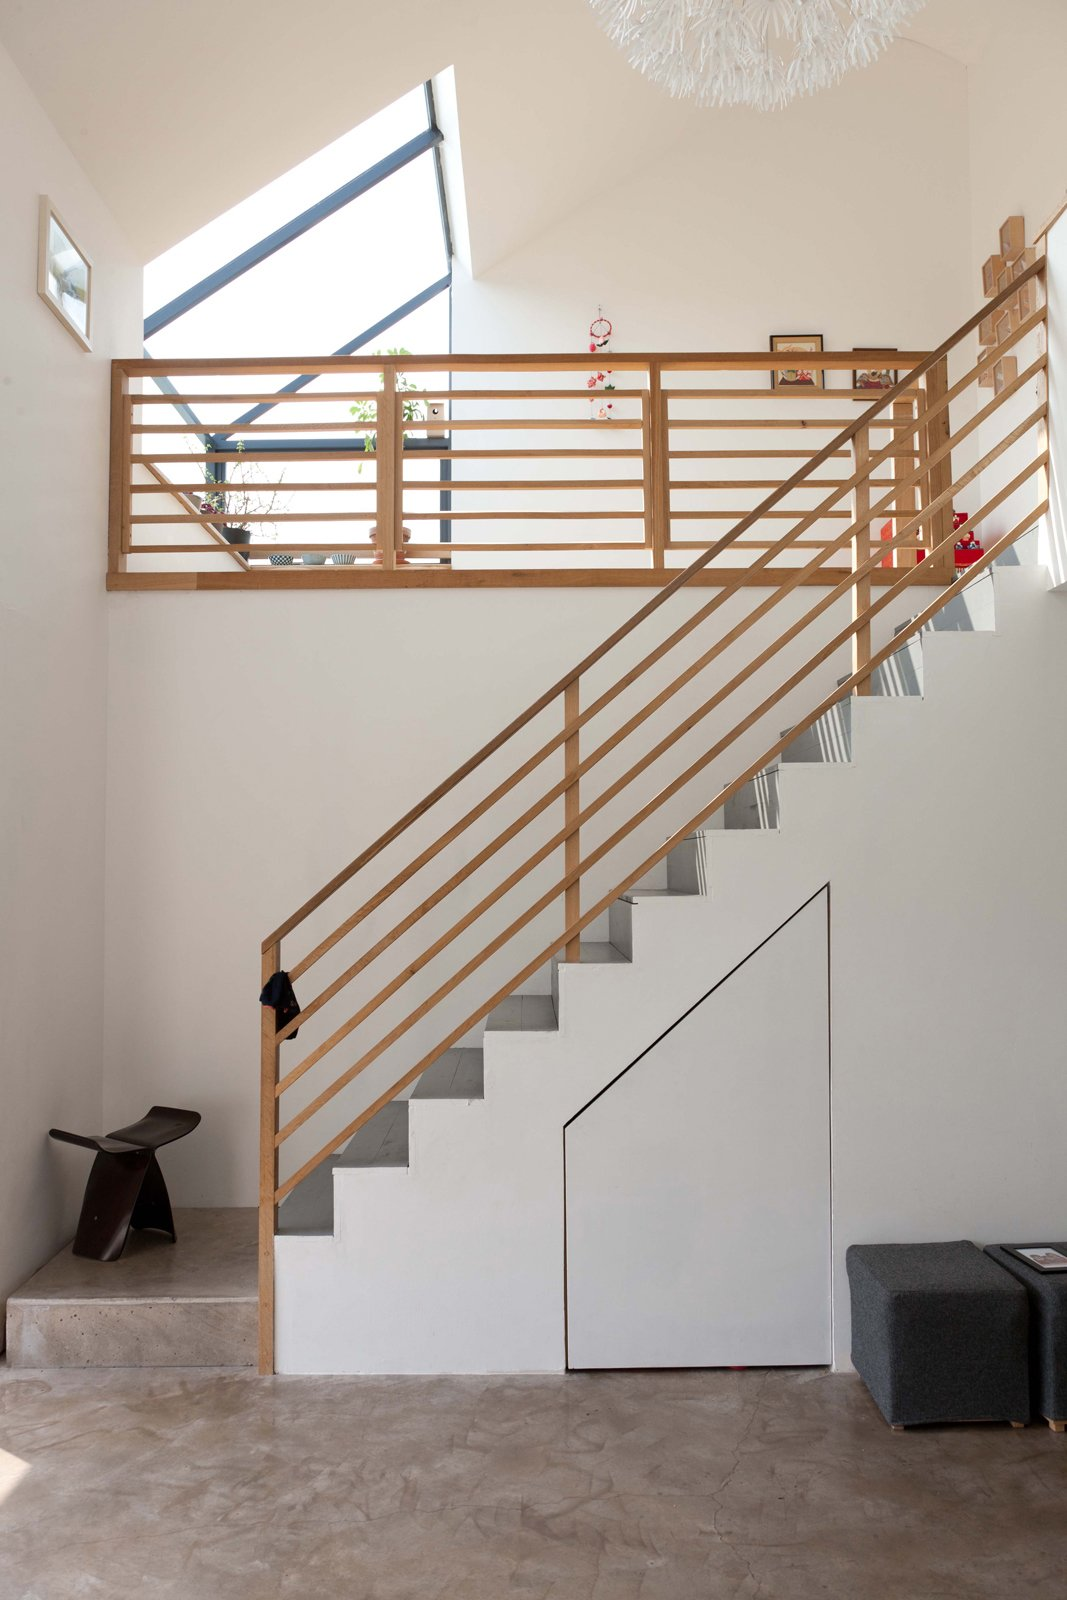 The spatial drama on the interior comes from the staircase and tatami room upstairs. The daffodil pendant overlooking it all is from Ikea. The butterfly stool is by Sori Yanagi and was a birthday present from Konishi to Gaffney.  190+ Best Modern Staircase Ideas by Dwell from A Piece of Home